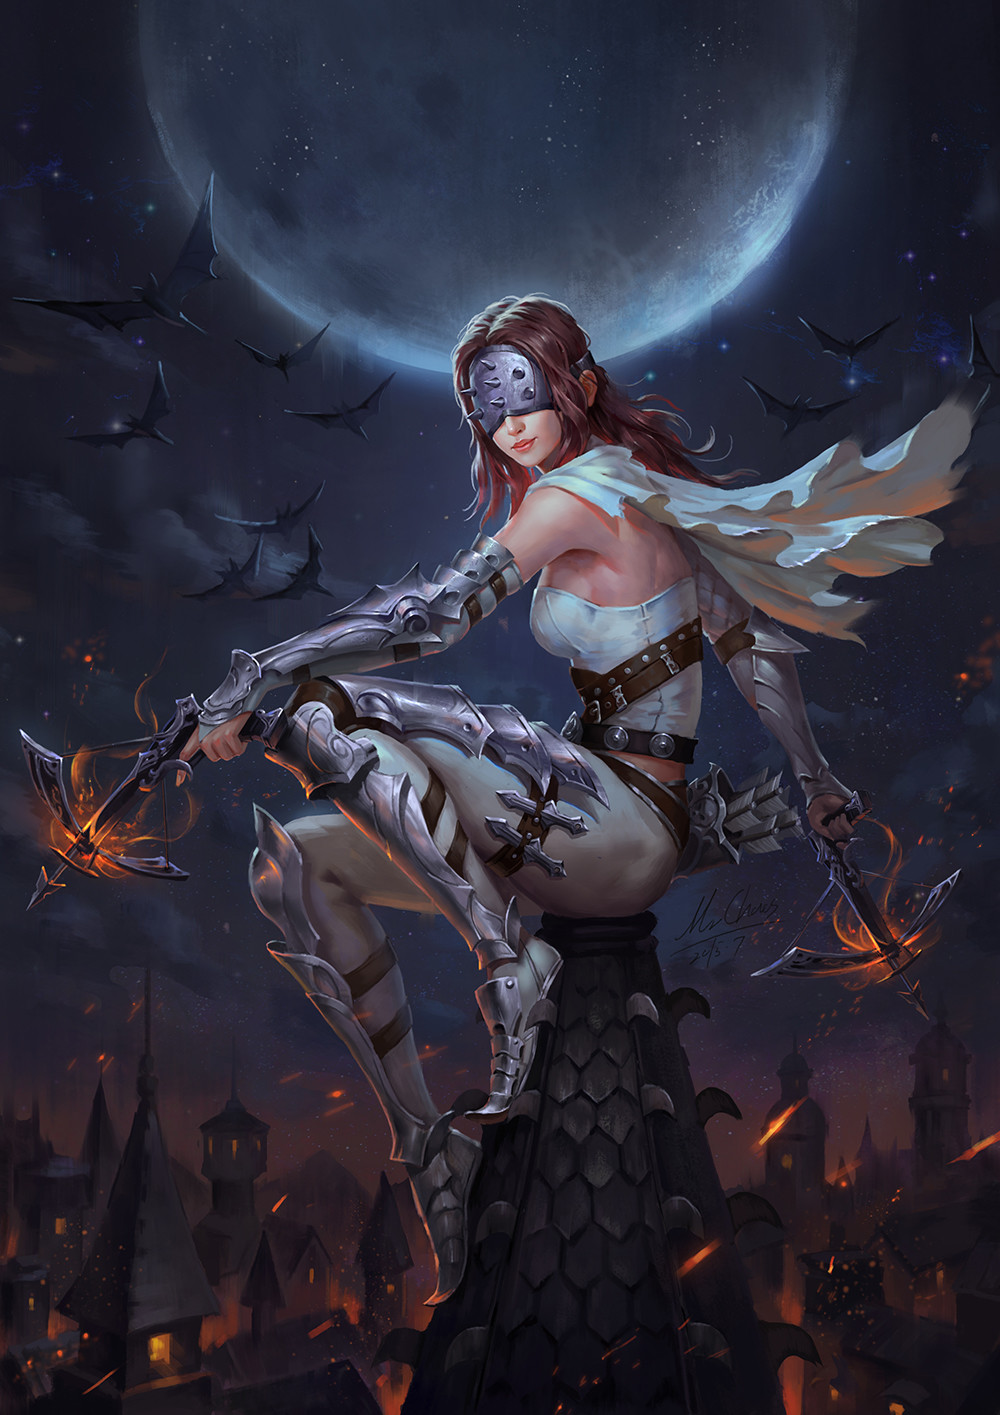 1girl armor armored_boots arrow bat belt boots bow_(weapon) brown_hair bustier cape crossbow diablo_3 dual_wielding fire highres holster lips long_hair mask moon night quiver sitting solo spikes thigh_holster town weapon wenfei_ye